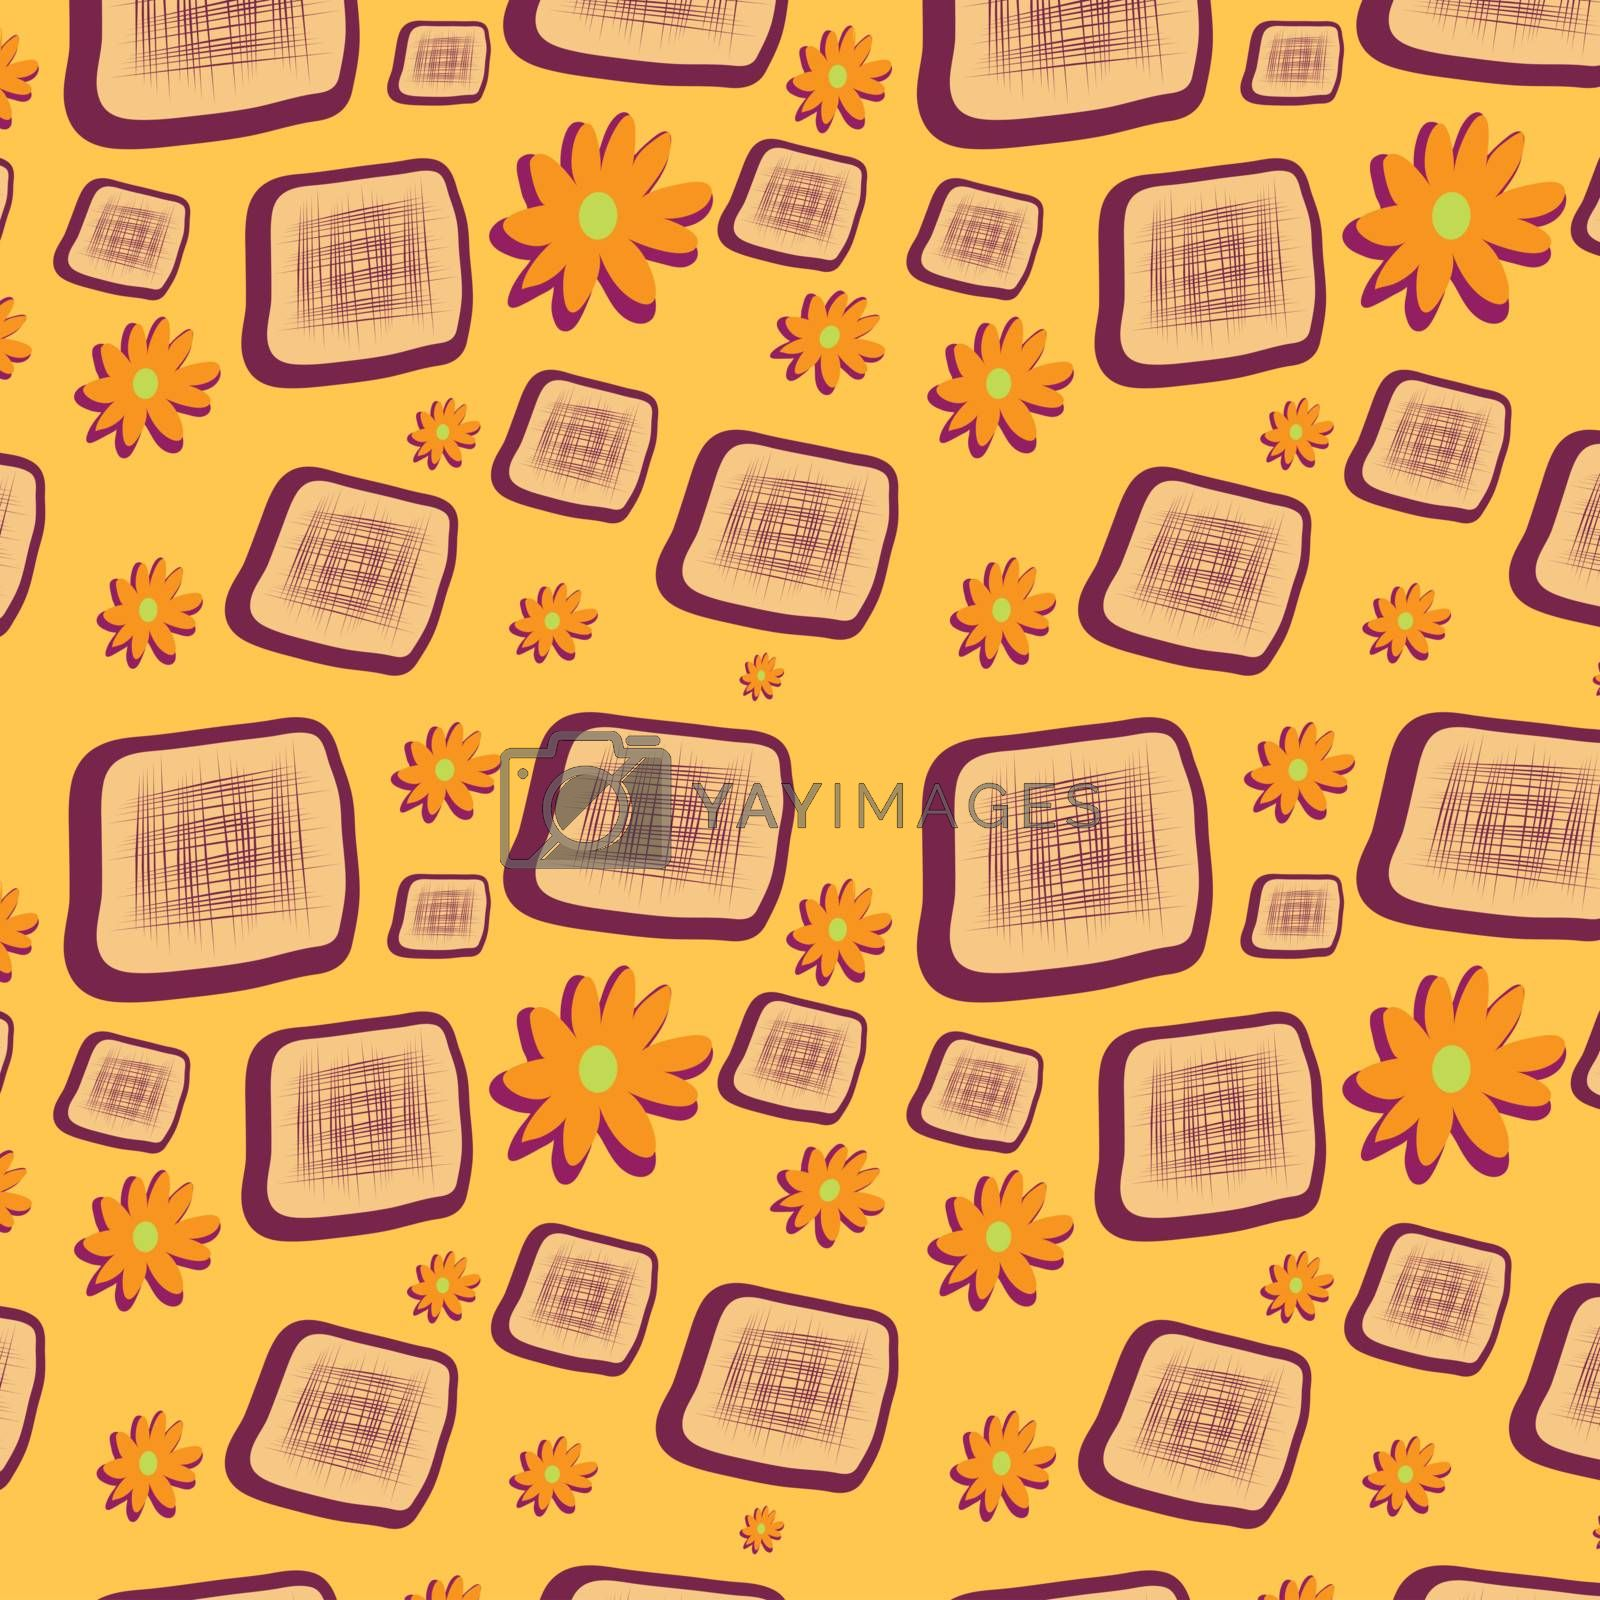 Seamless background with squares and flowers, vector, illustration